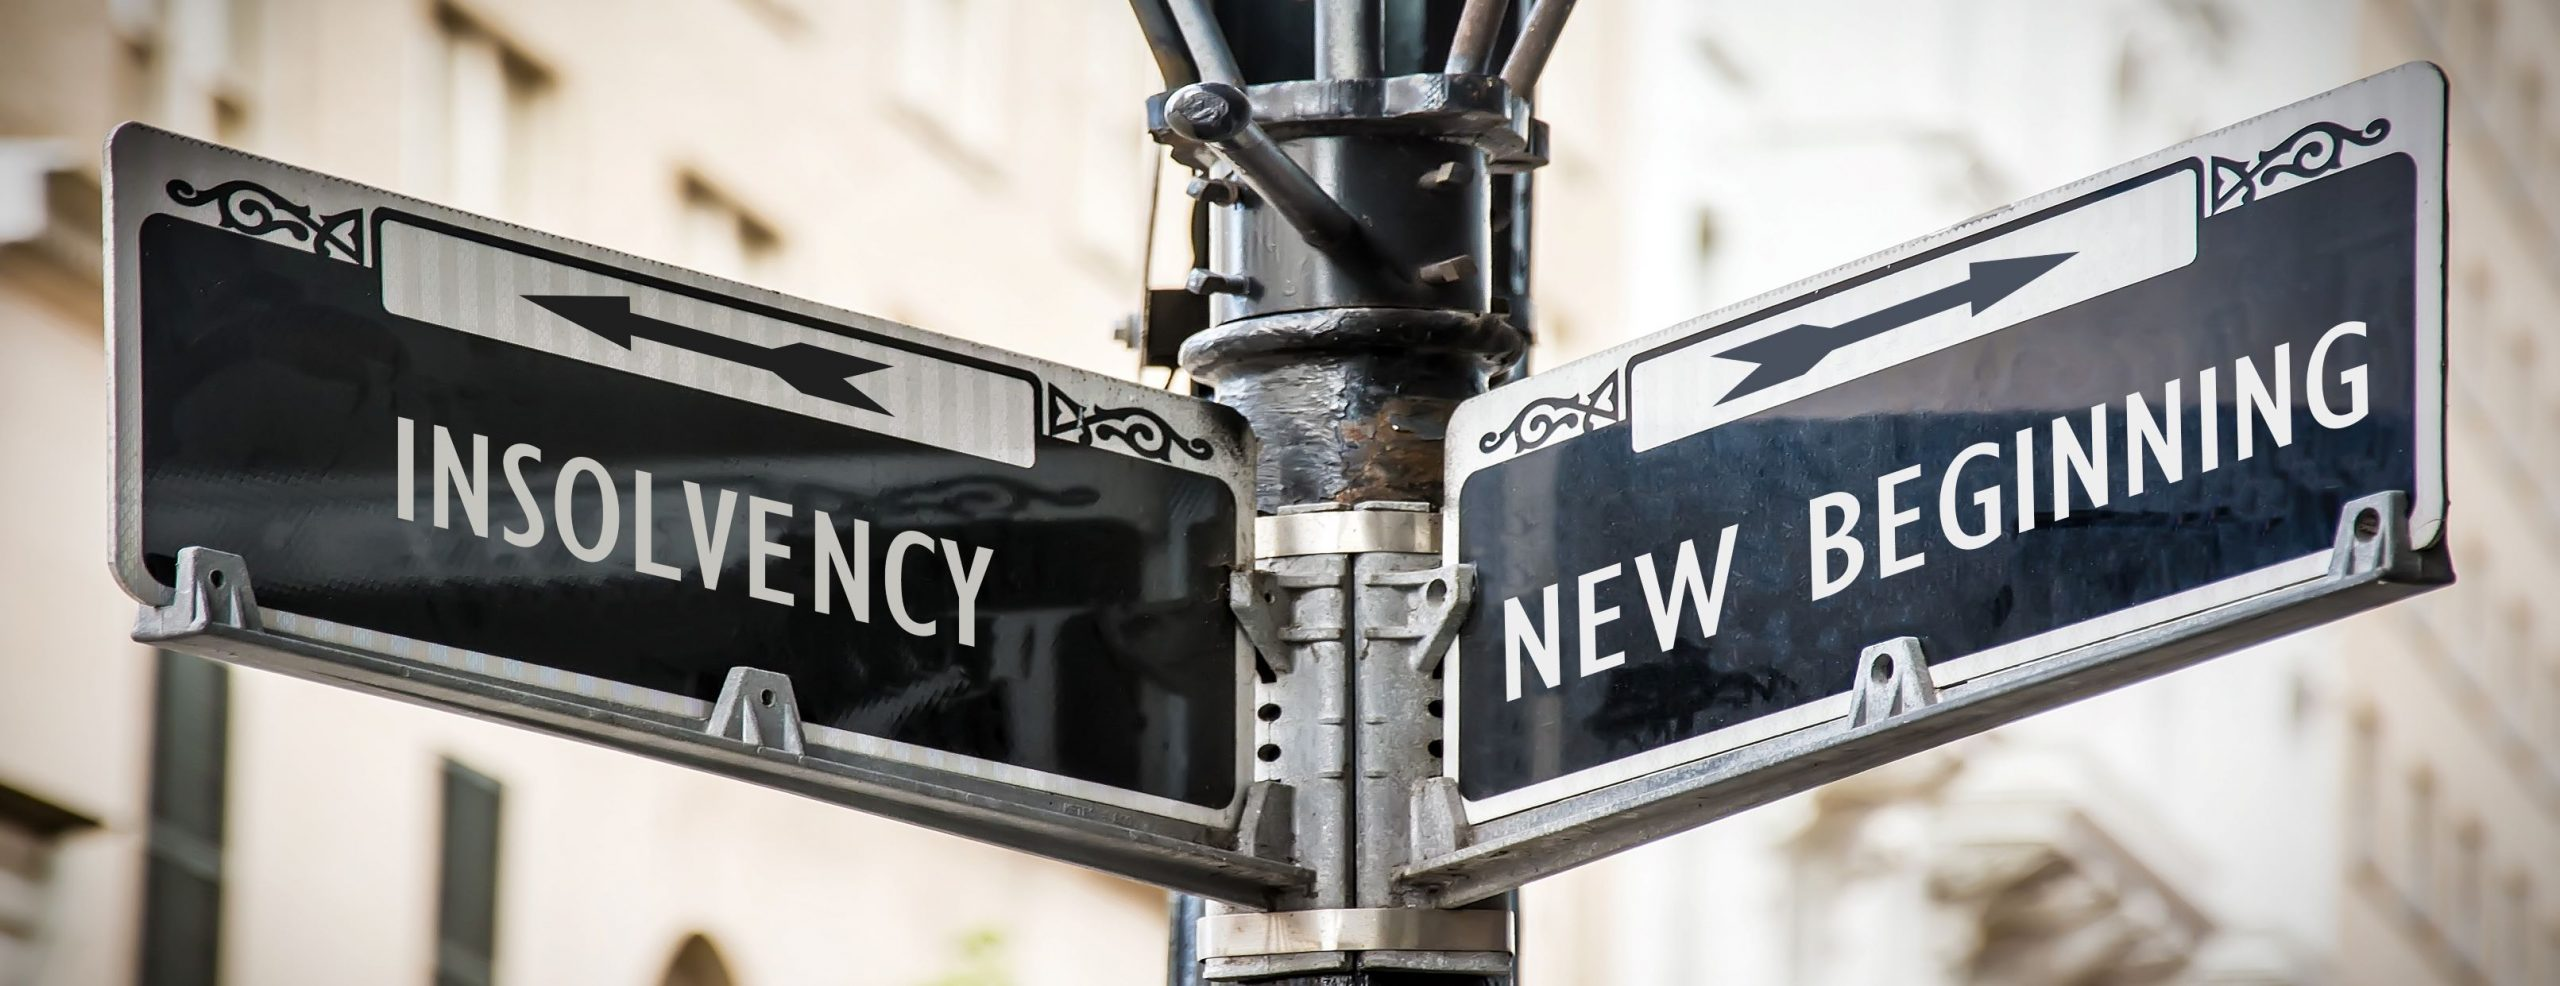 personal insolvency agreement new beginning - bankruptcy advisory centre